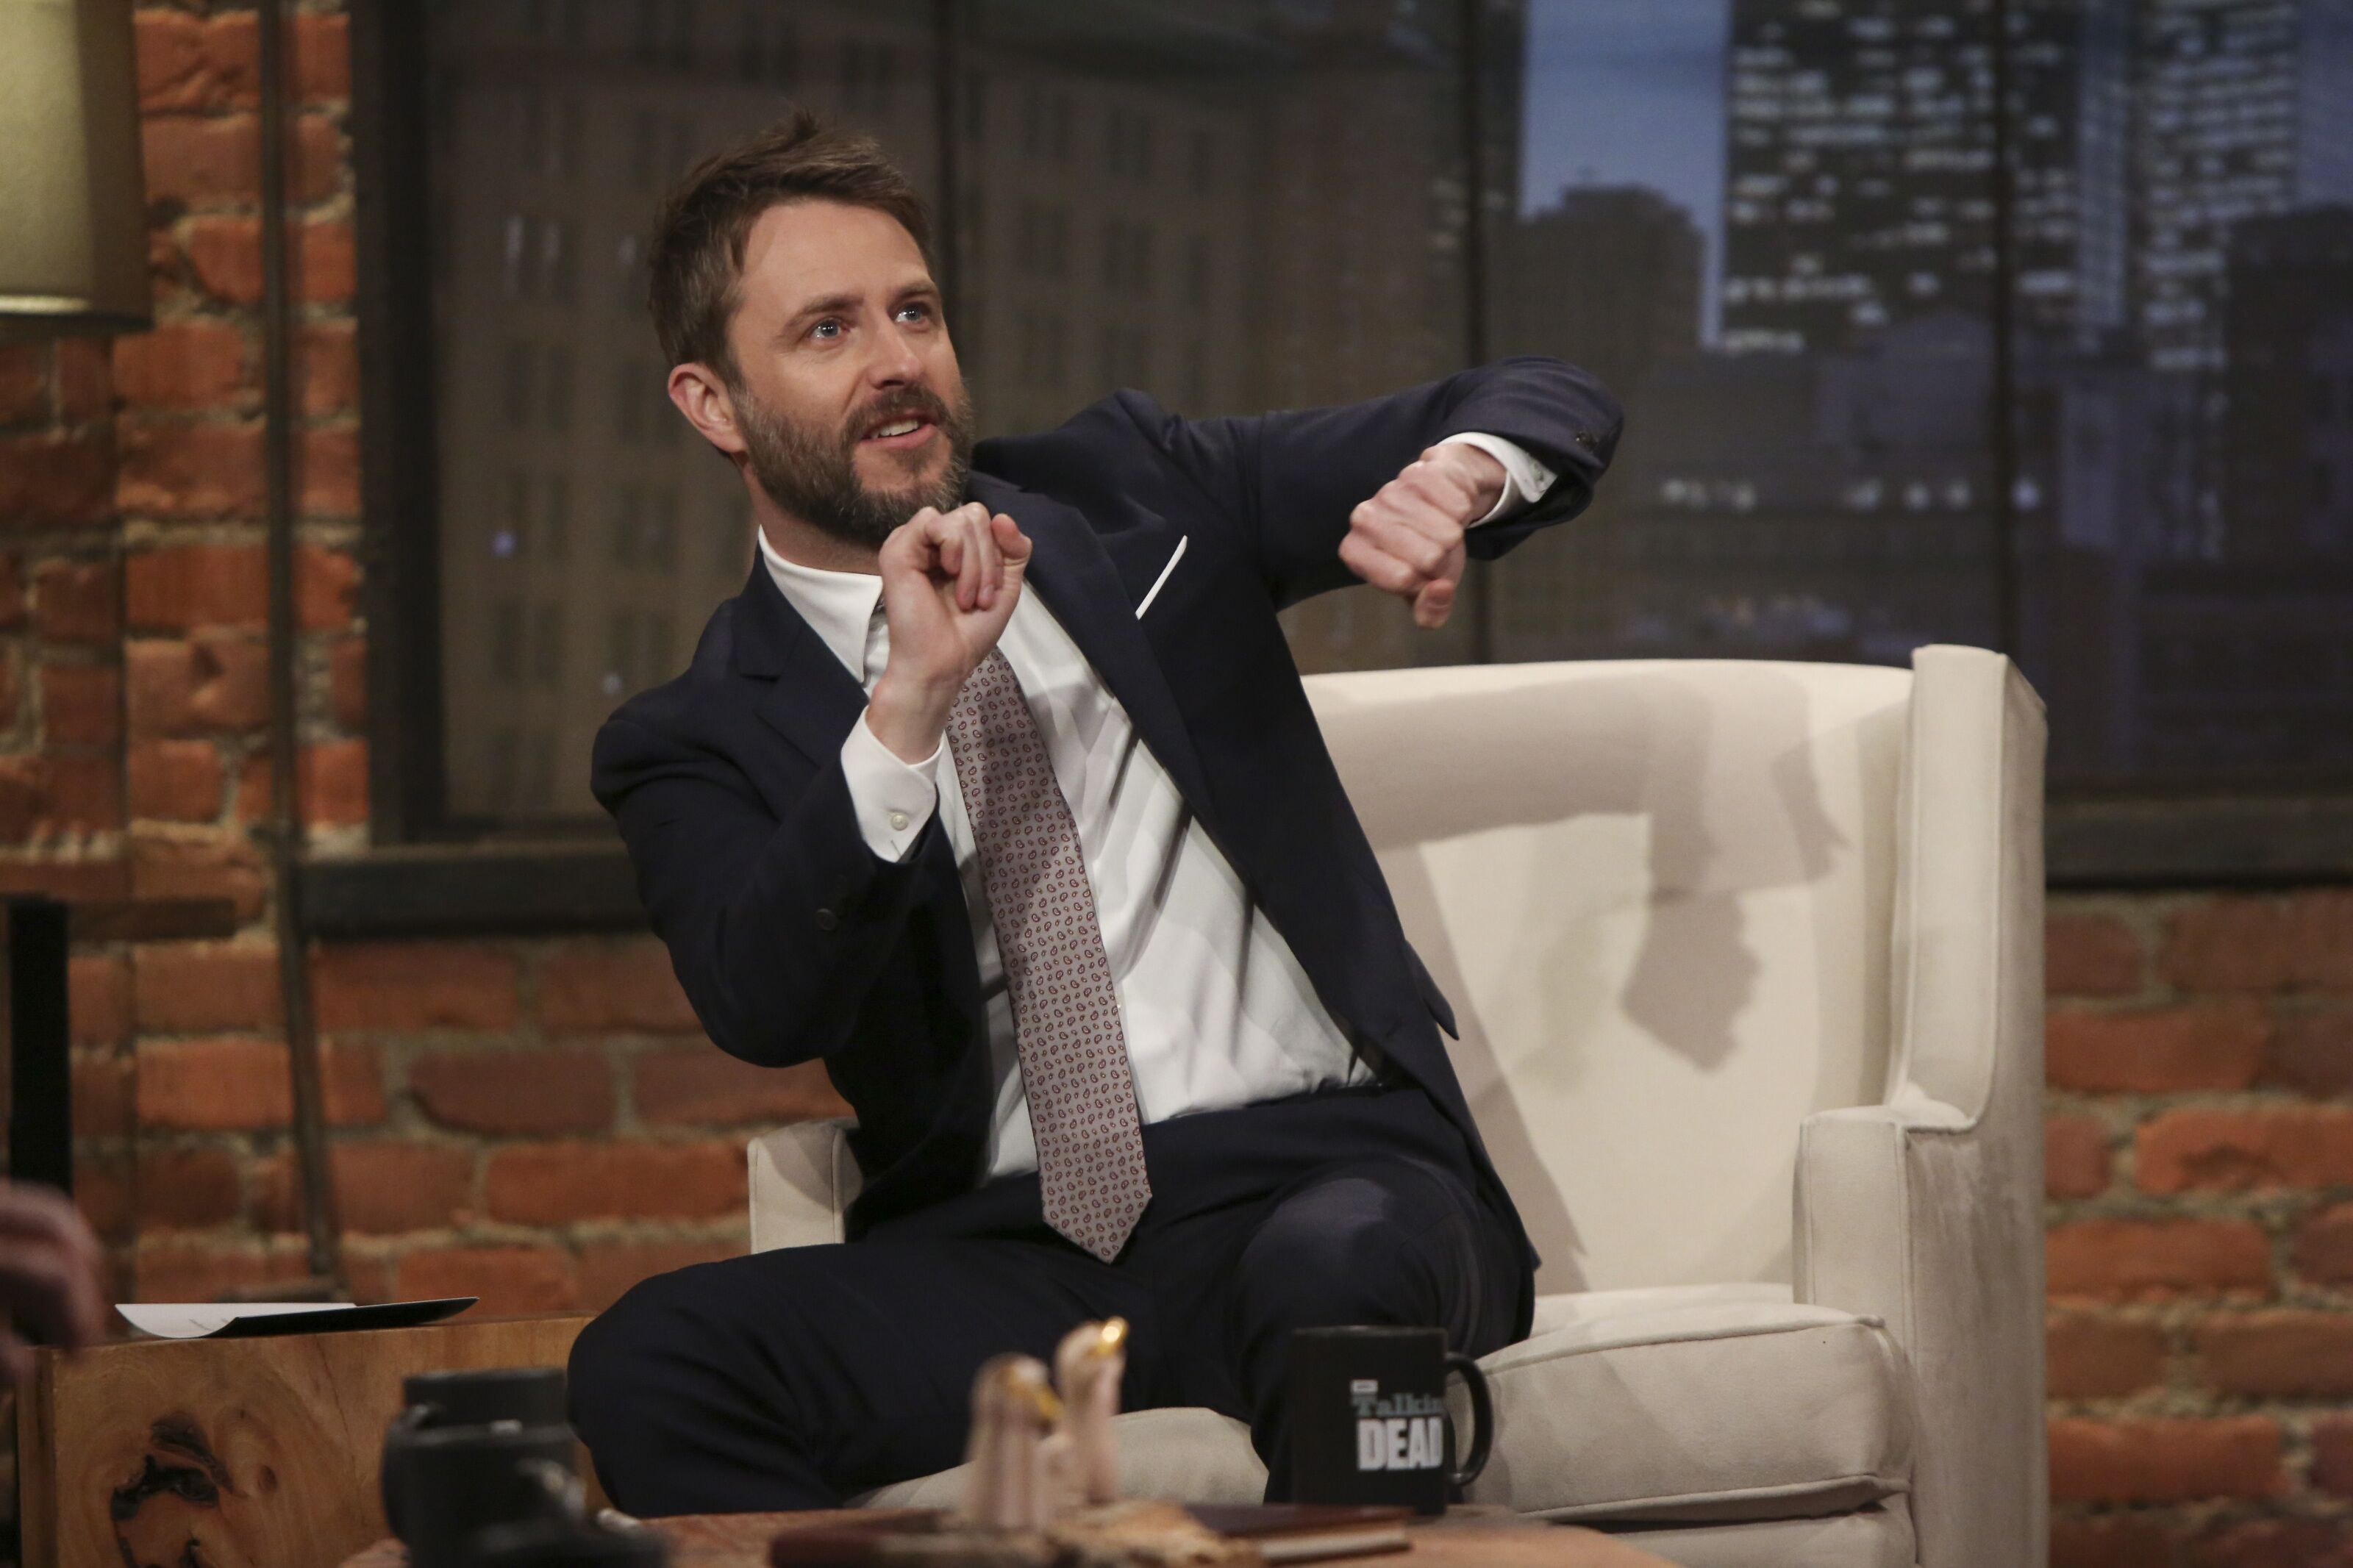 Talking Dead guests for The Walking Dead episode 1002 on Oct. 13